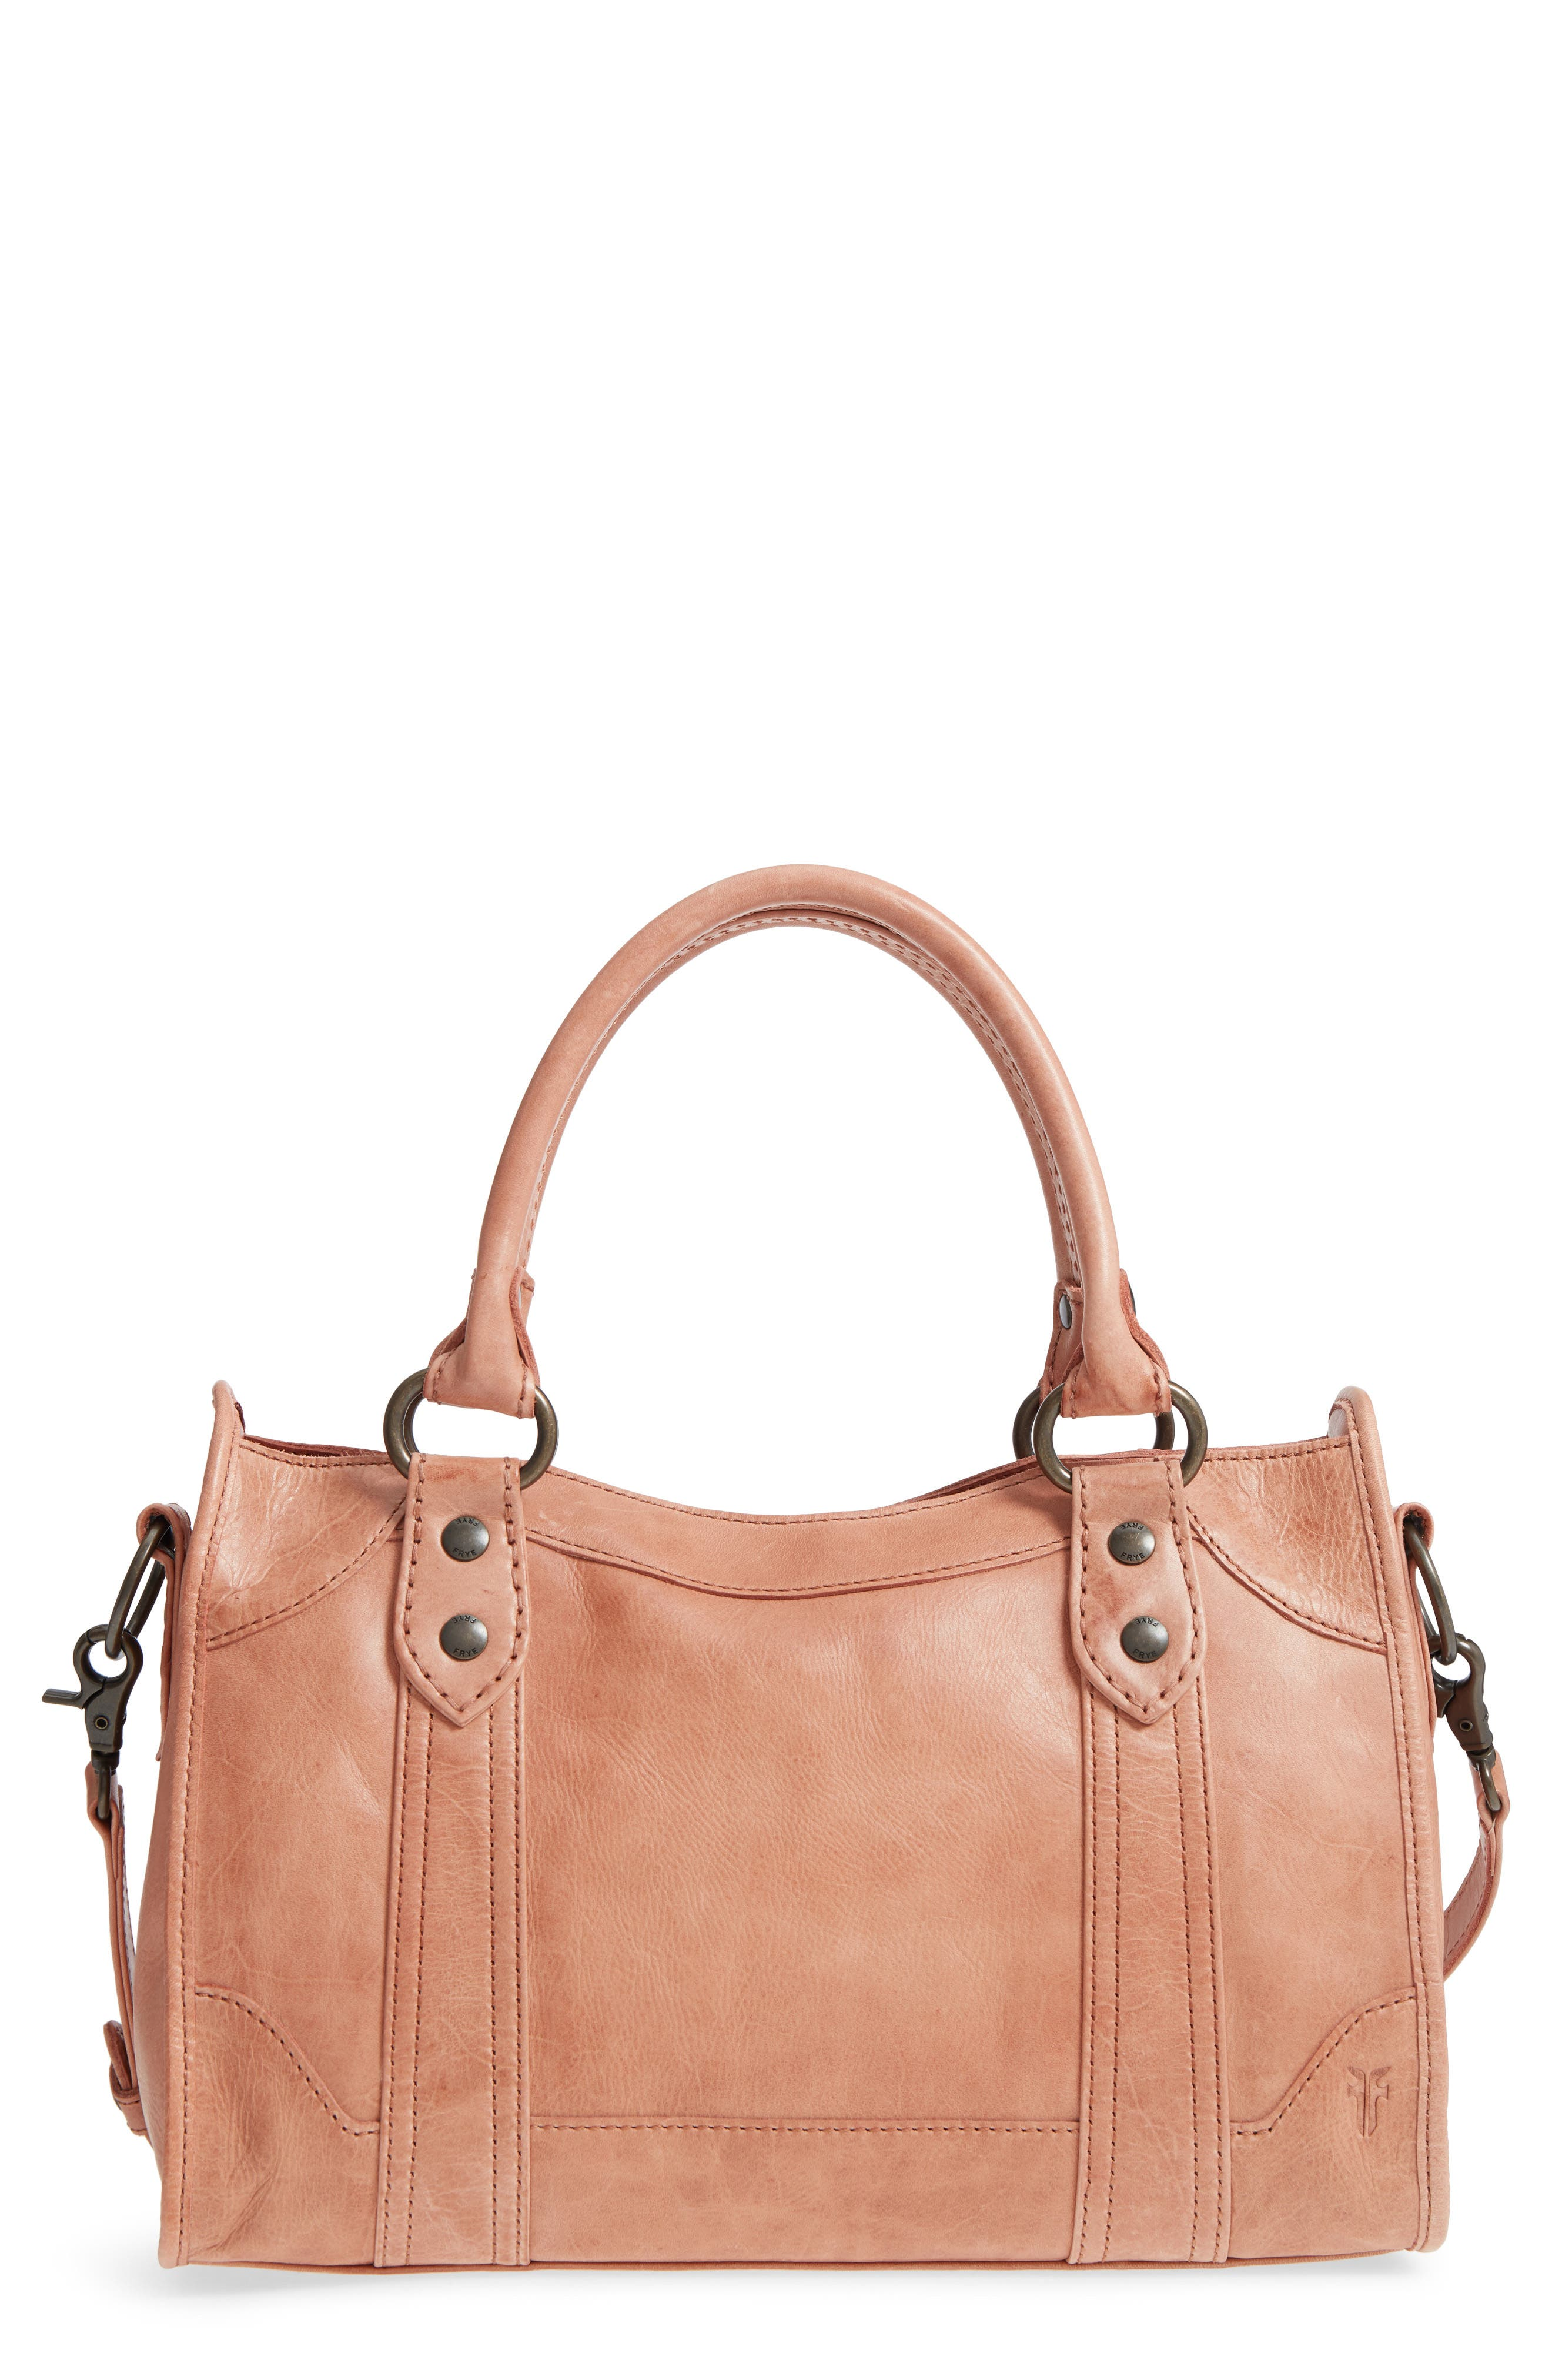 'Melissa' Washed Leather Satchel,                             Main thumbnail 1, color,                             DUSTY ROSE